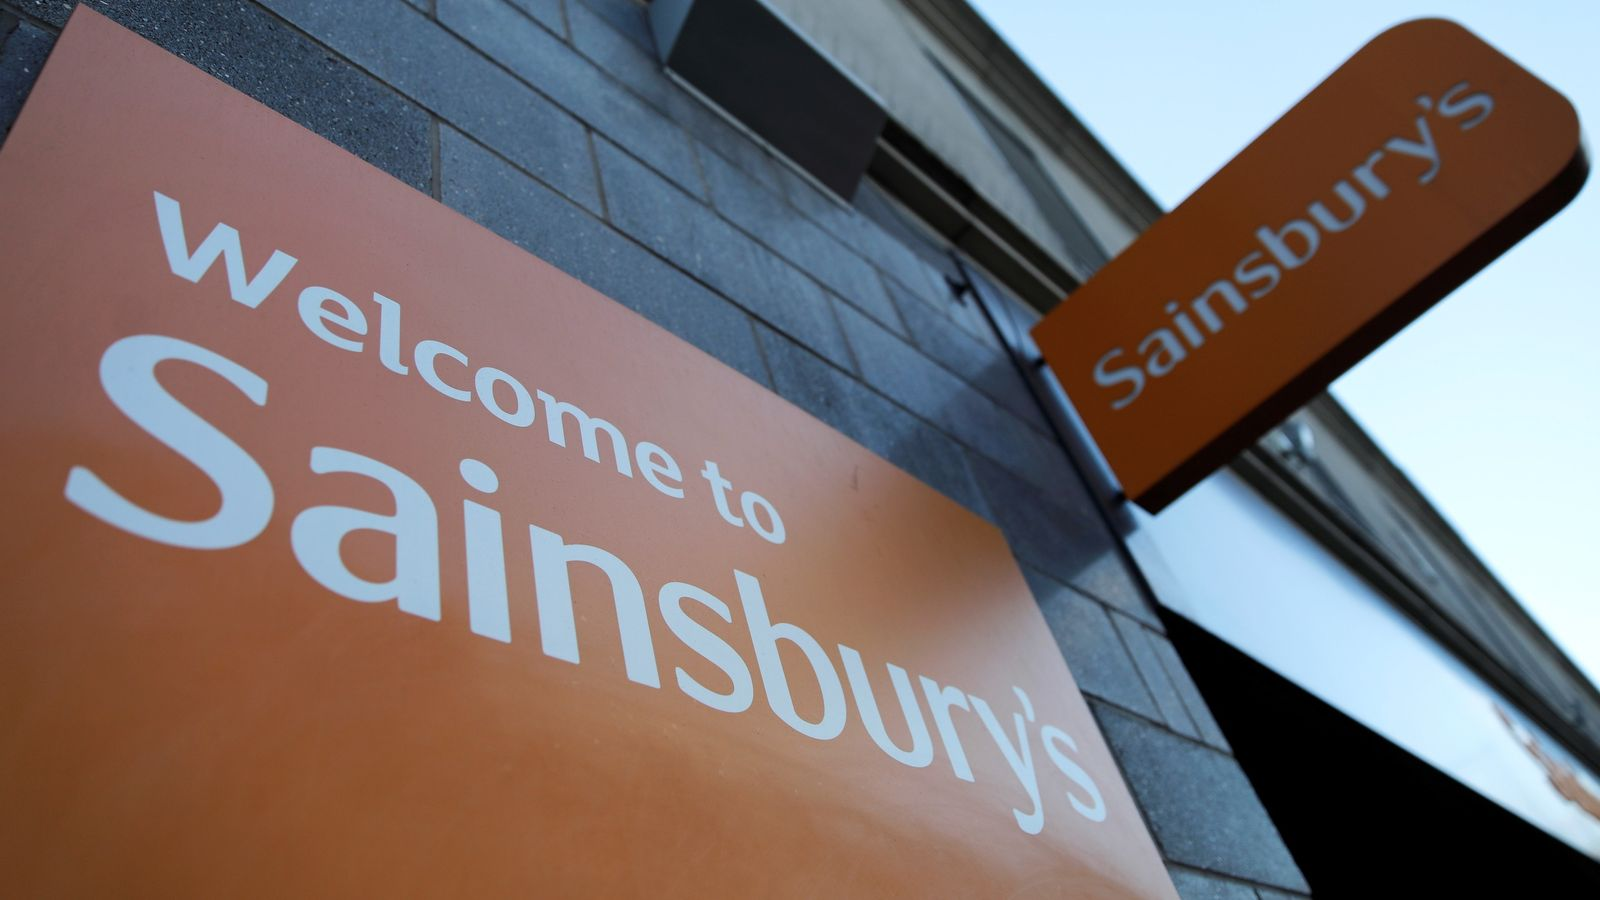 Sainsbury's banks on sale of £1.9bn mortgage book - EpicNews